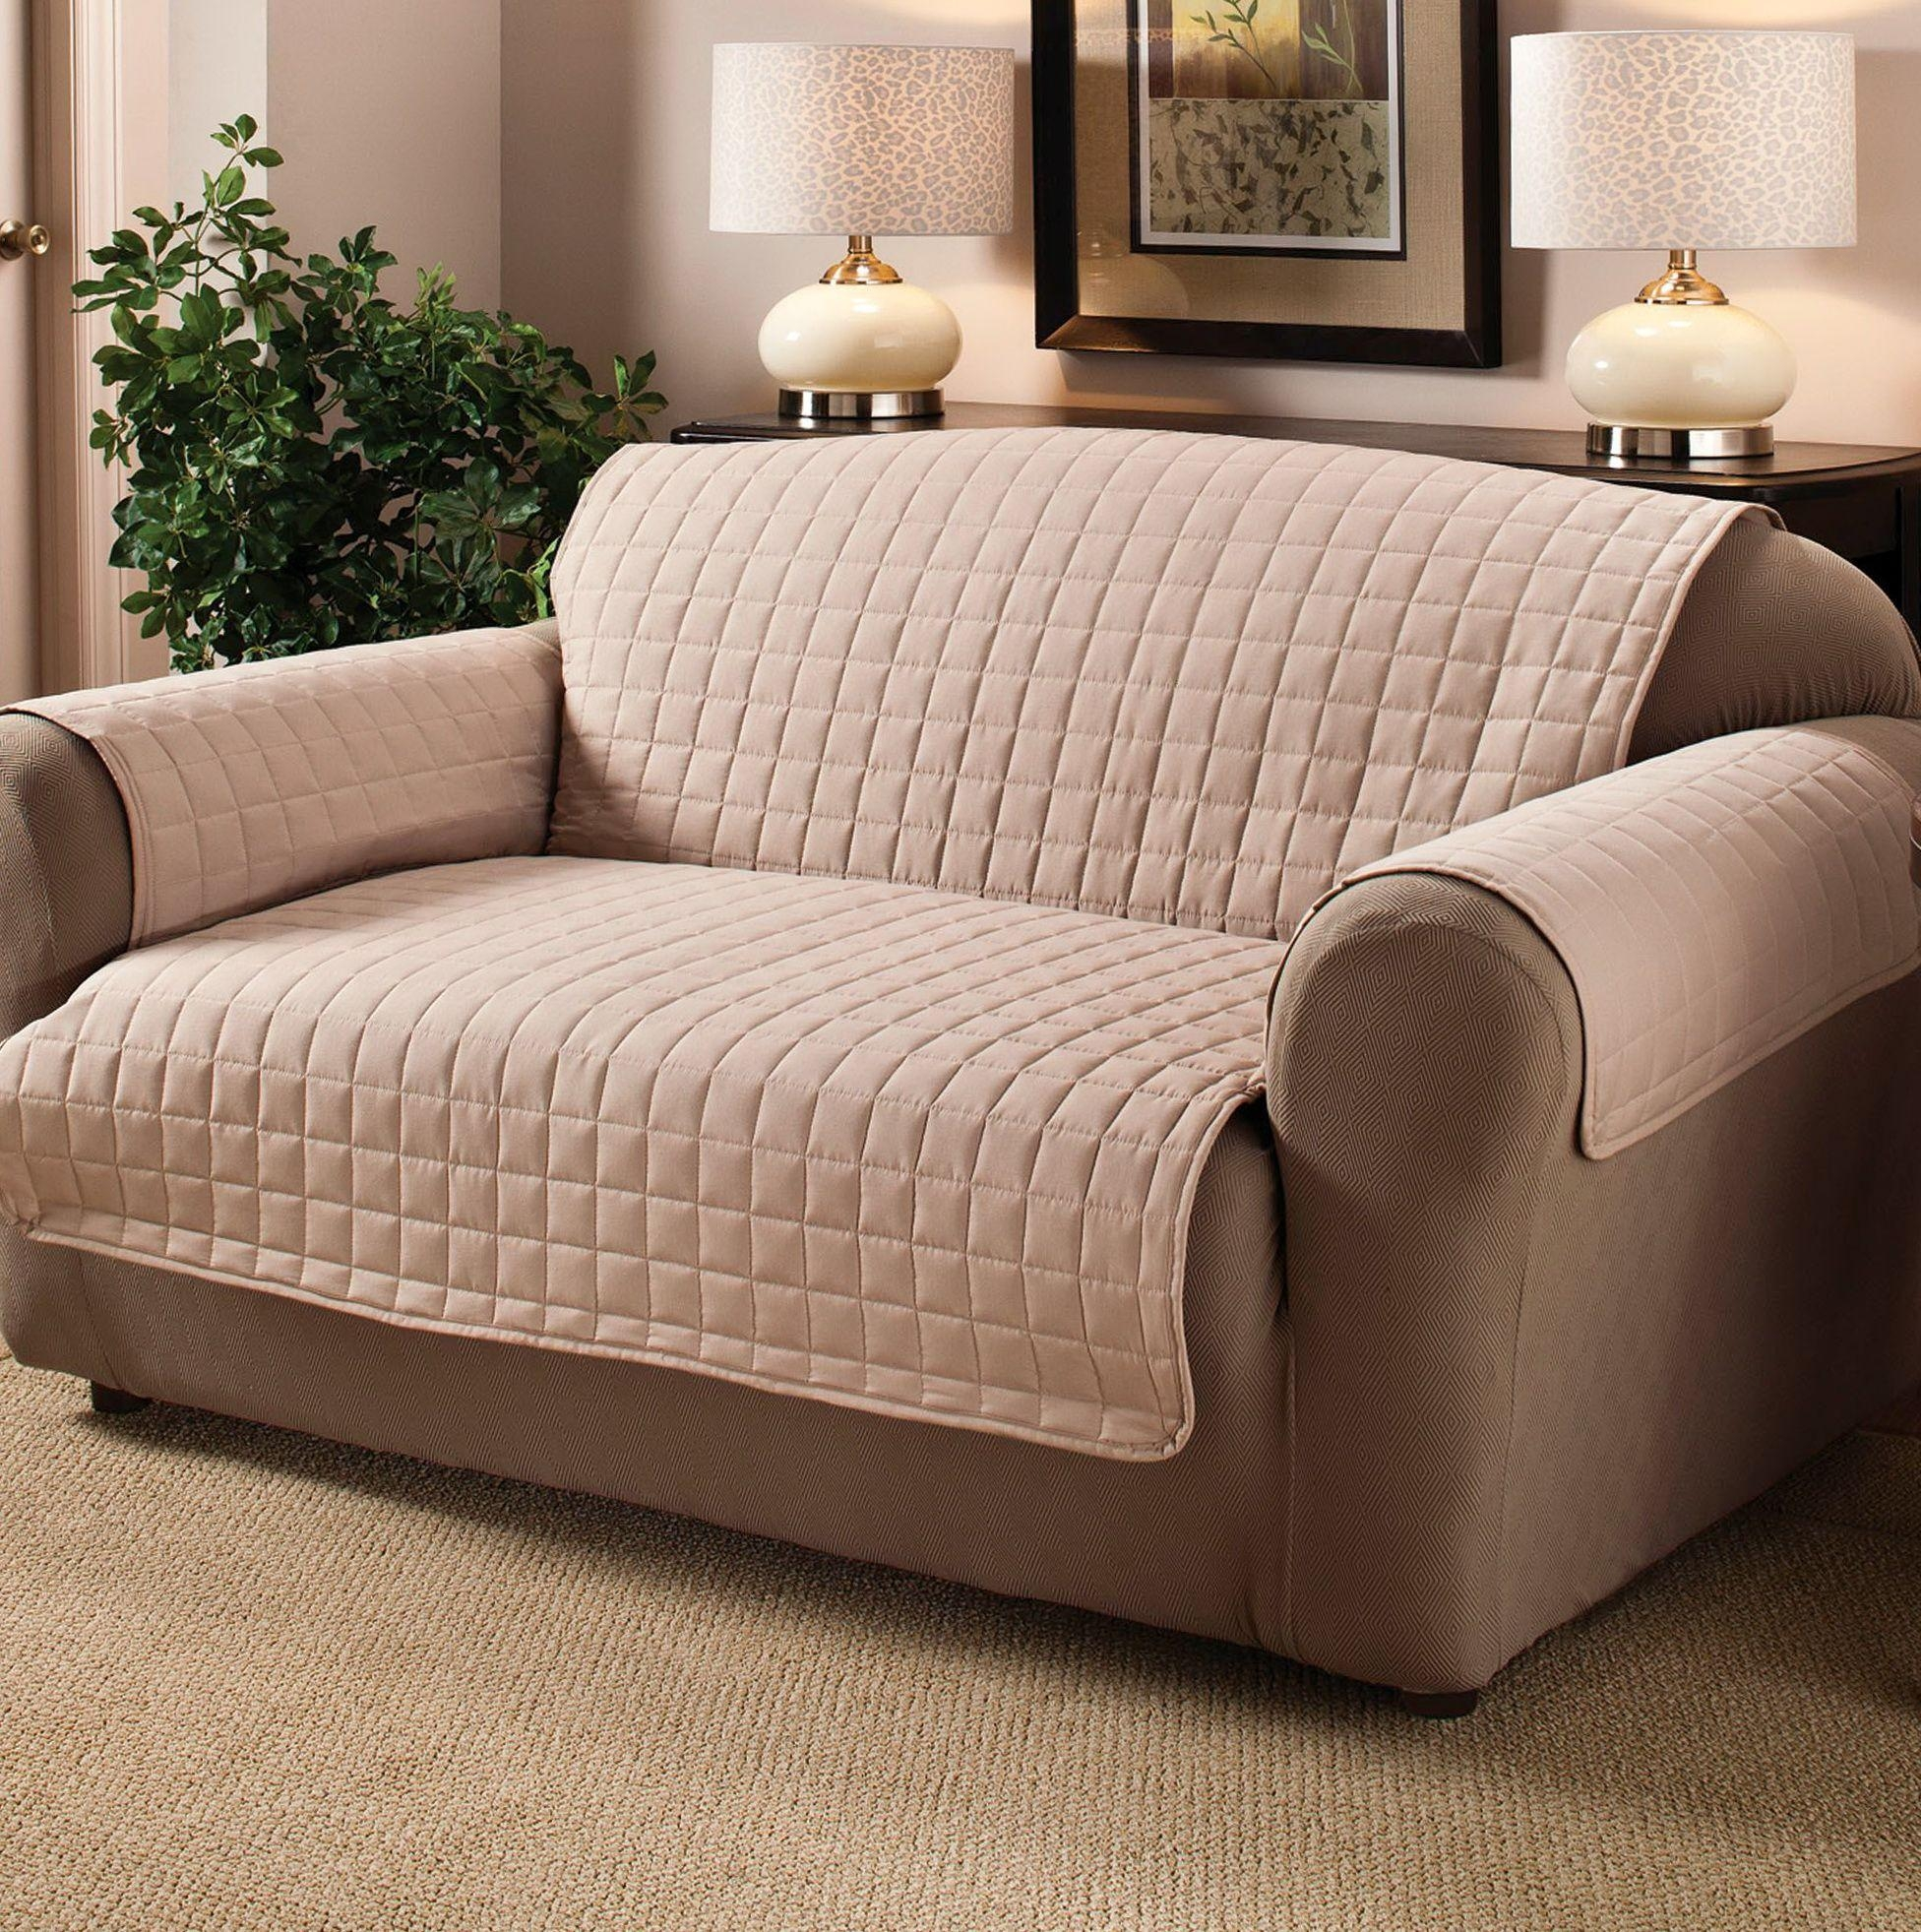 Furniture: Sectional Sofa Covers Walmart | Sofa Covers At Walmart Inside Slipcover For Leather Sectional Sofas (Image 9 of 21)